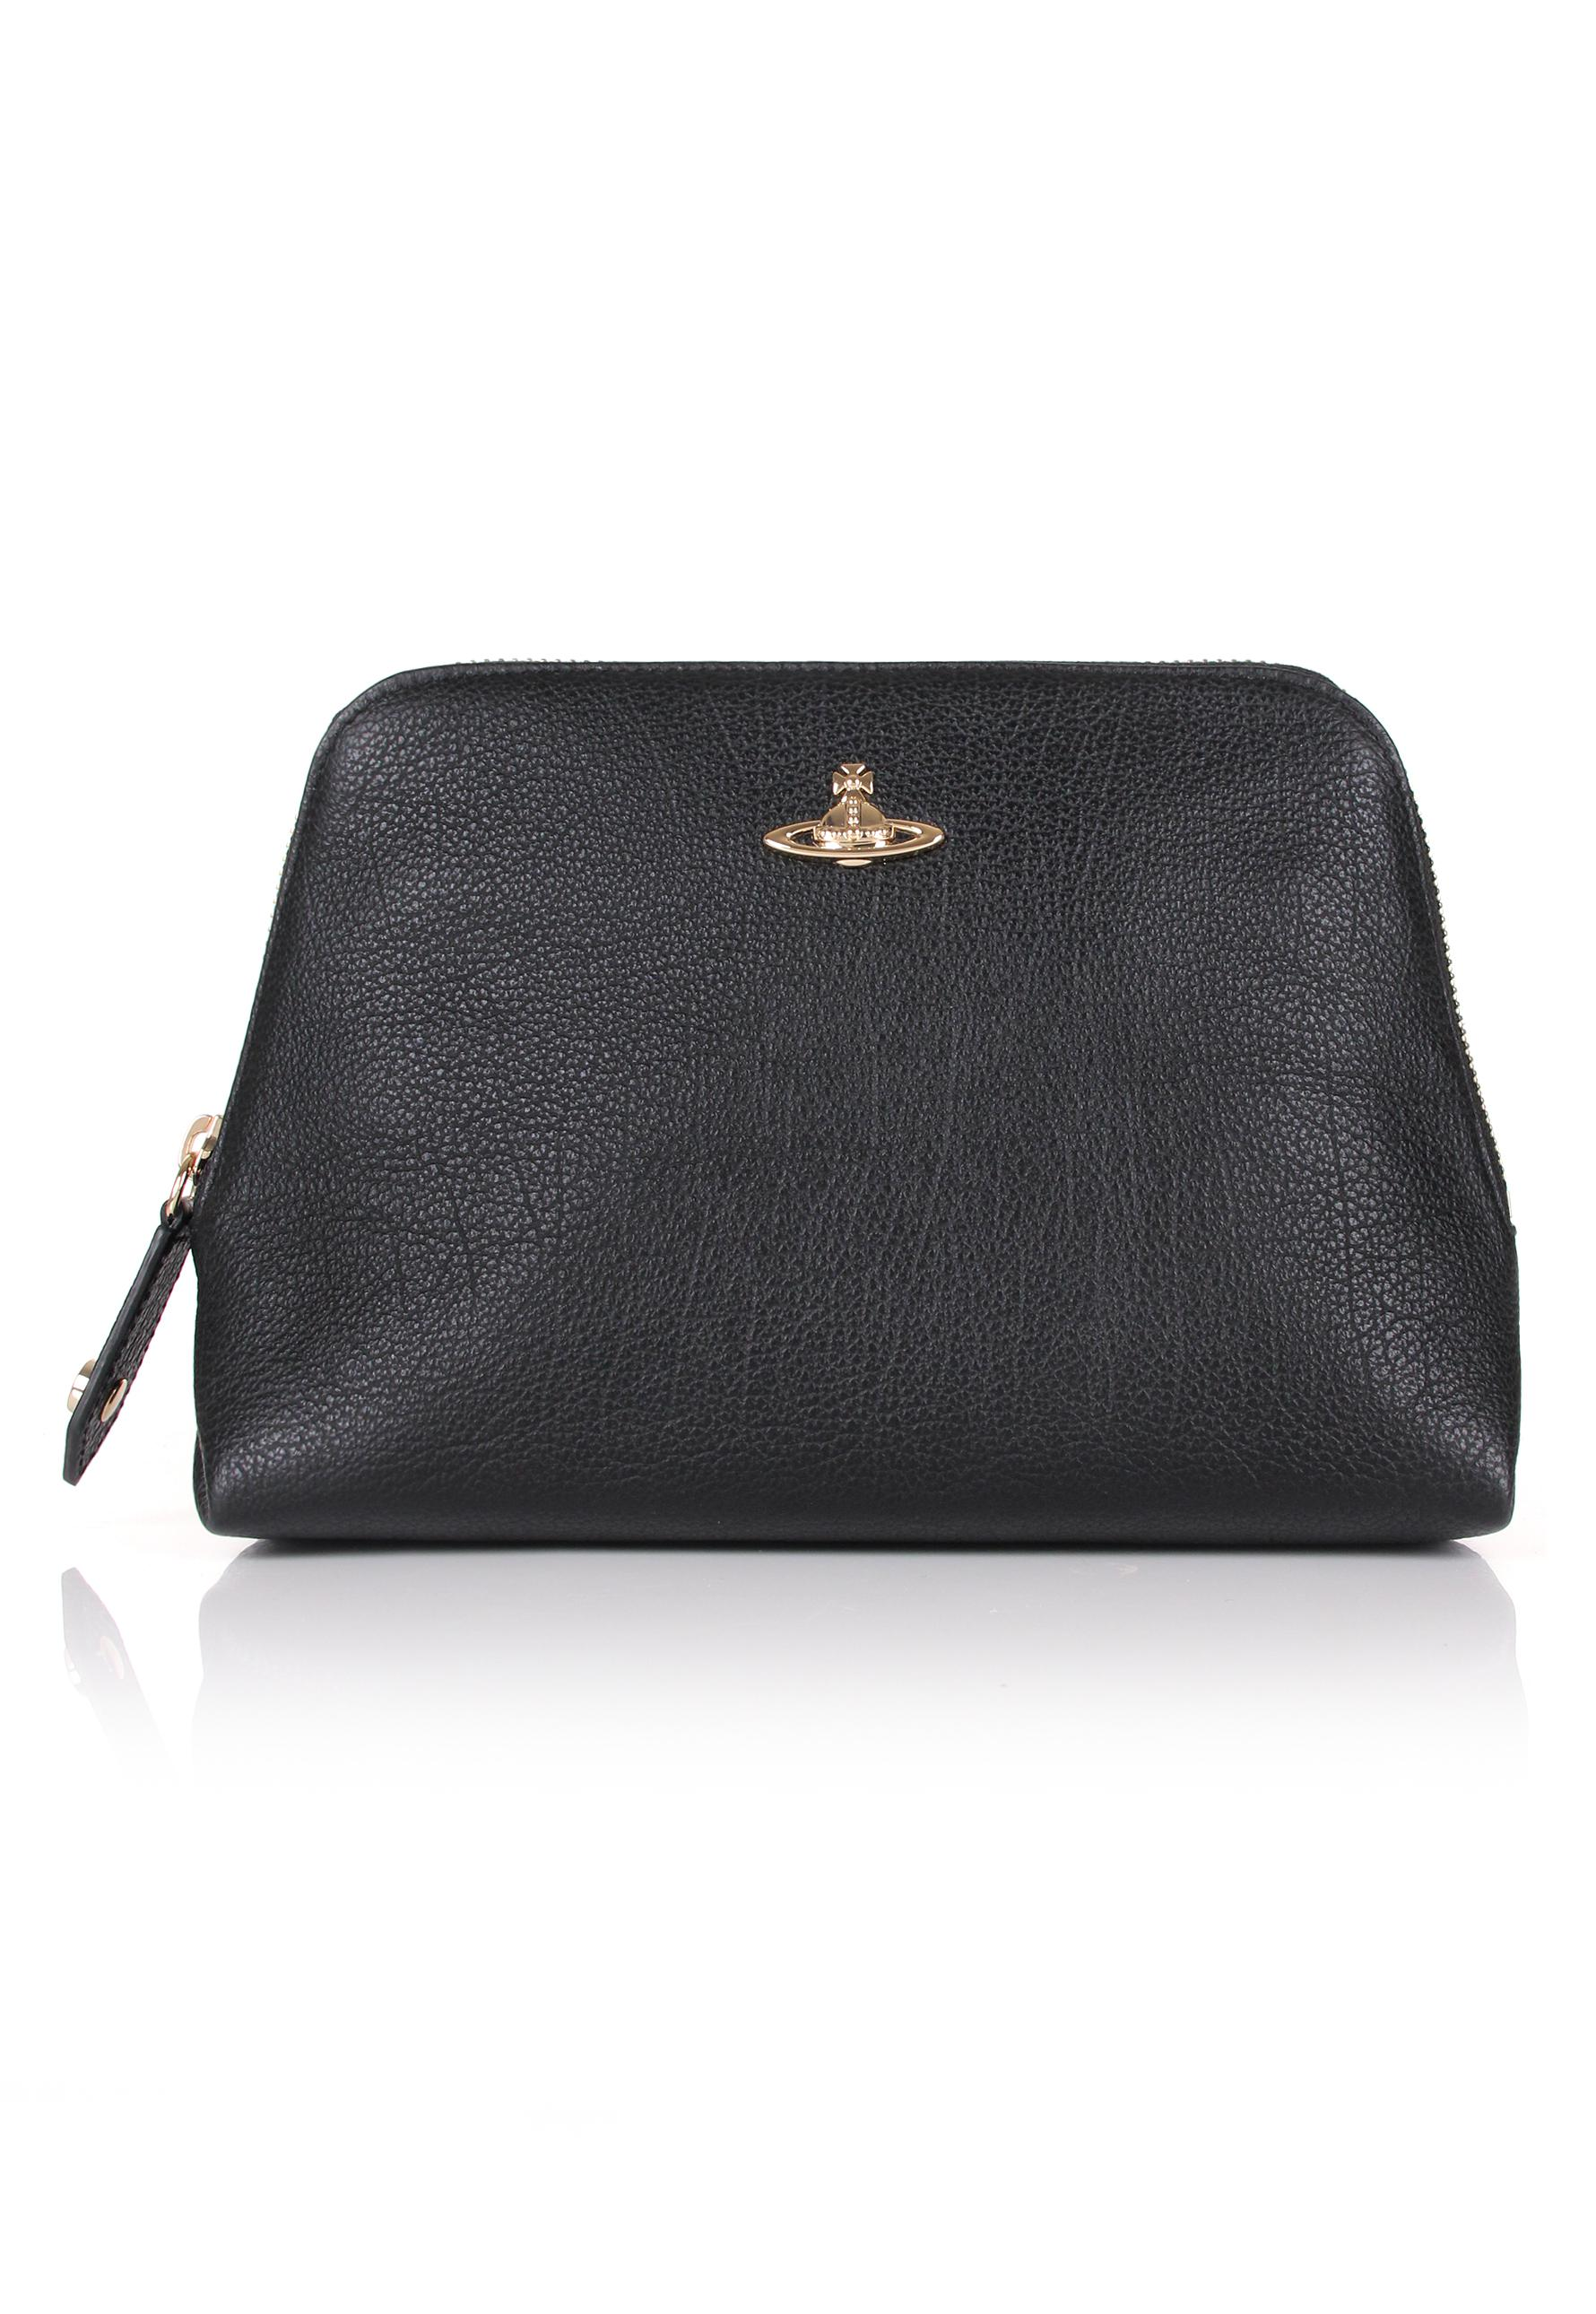 7e49861c533 Vivienne Westwood Balmoral 35099 Beauty Case Black in Black - Lyst